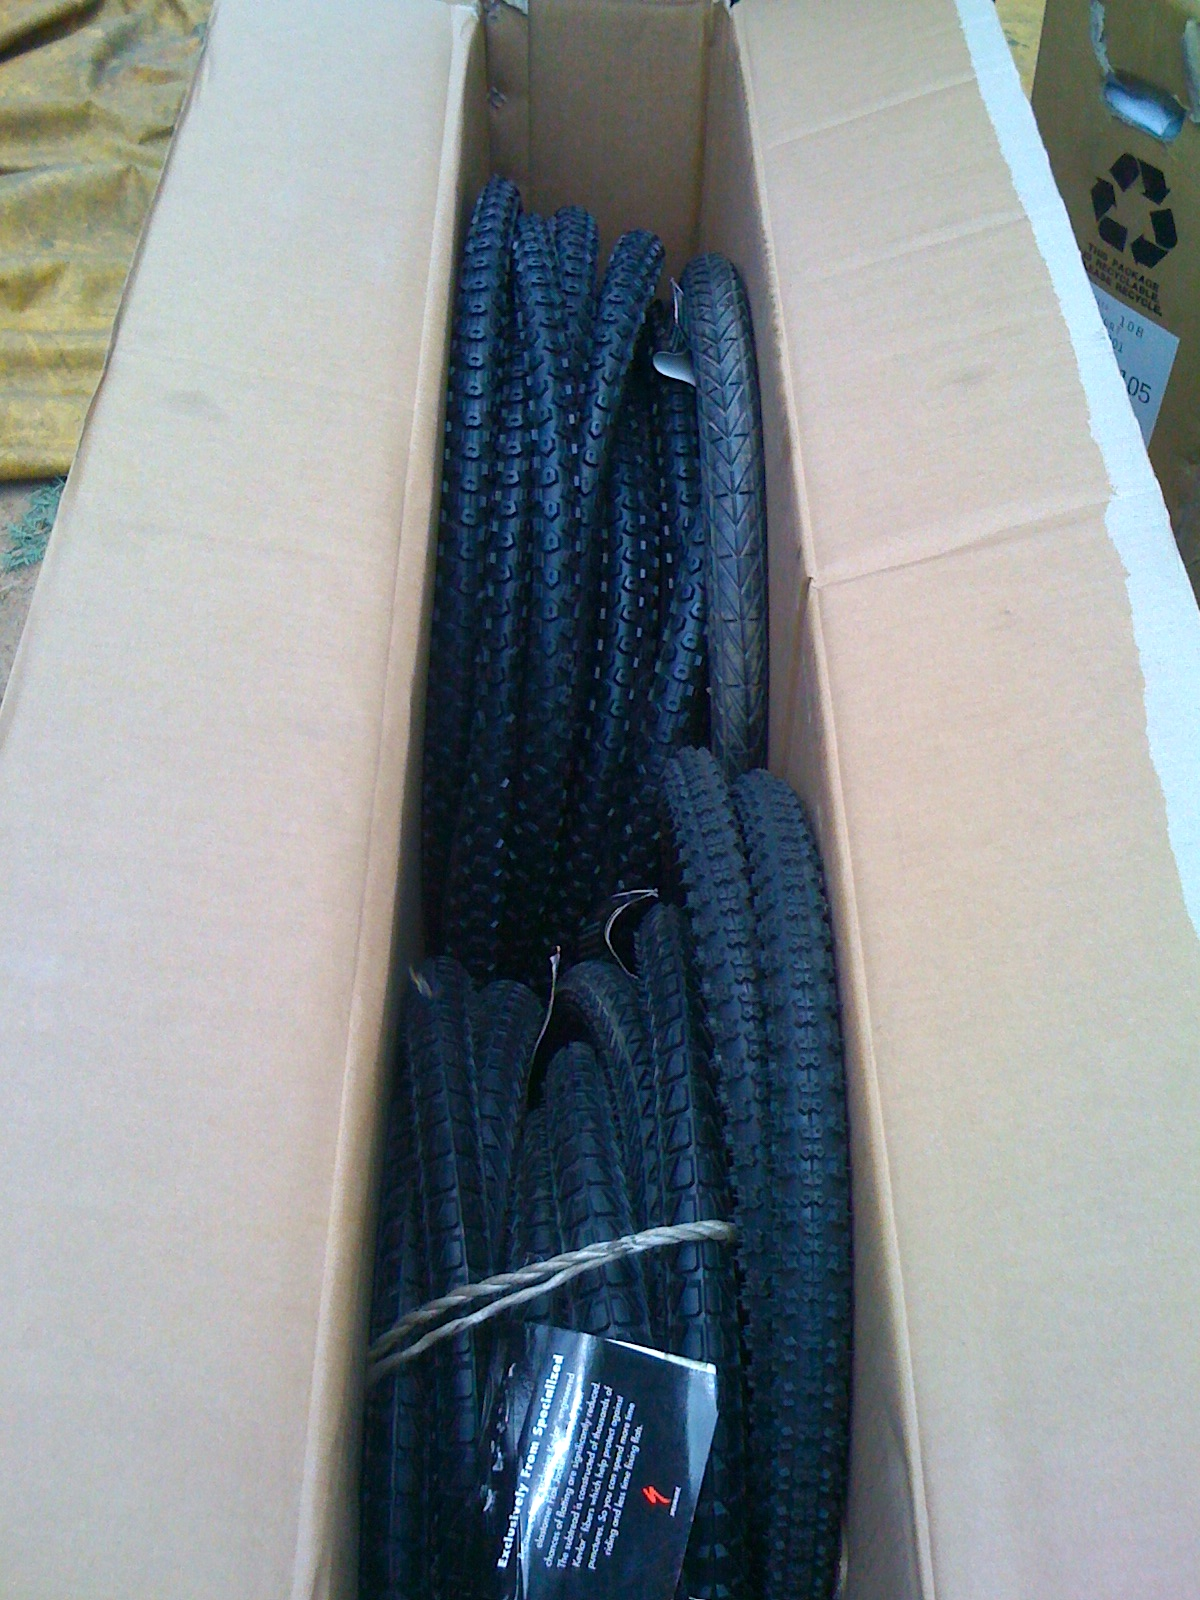 A batch of badly needed tires from Specialized.